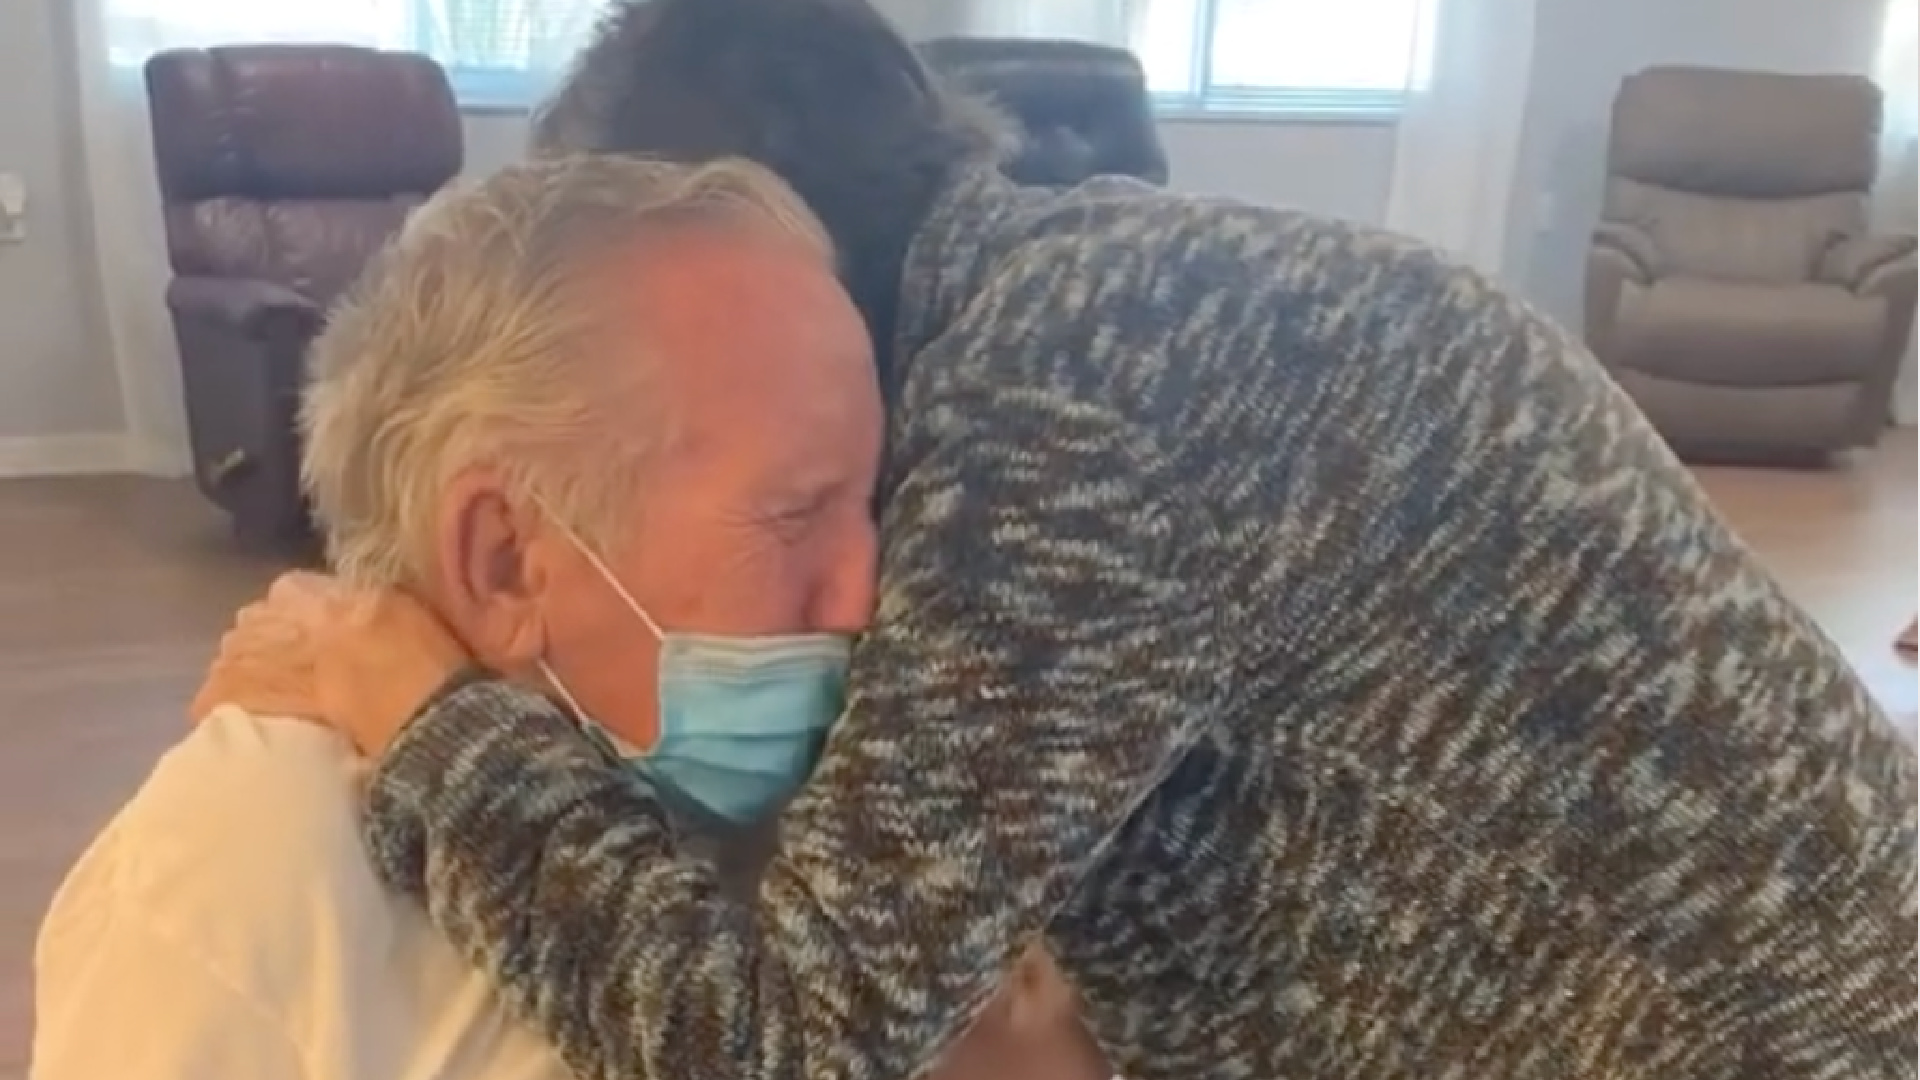 A couple married for more than 60 years are reunited at a Florida assisted living facility on Oct. 14, 2020, after they had been separated for 215 days due to coronavirus restrictions. (Rosecastle at Delaney Creek via Storyful)